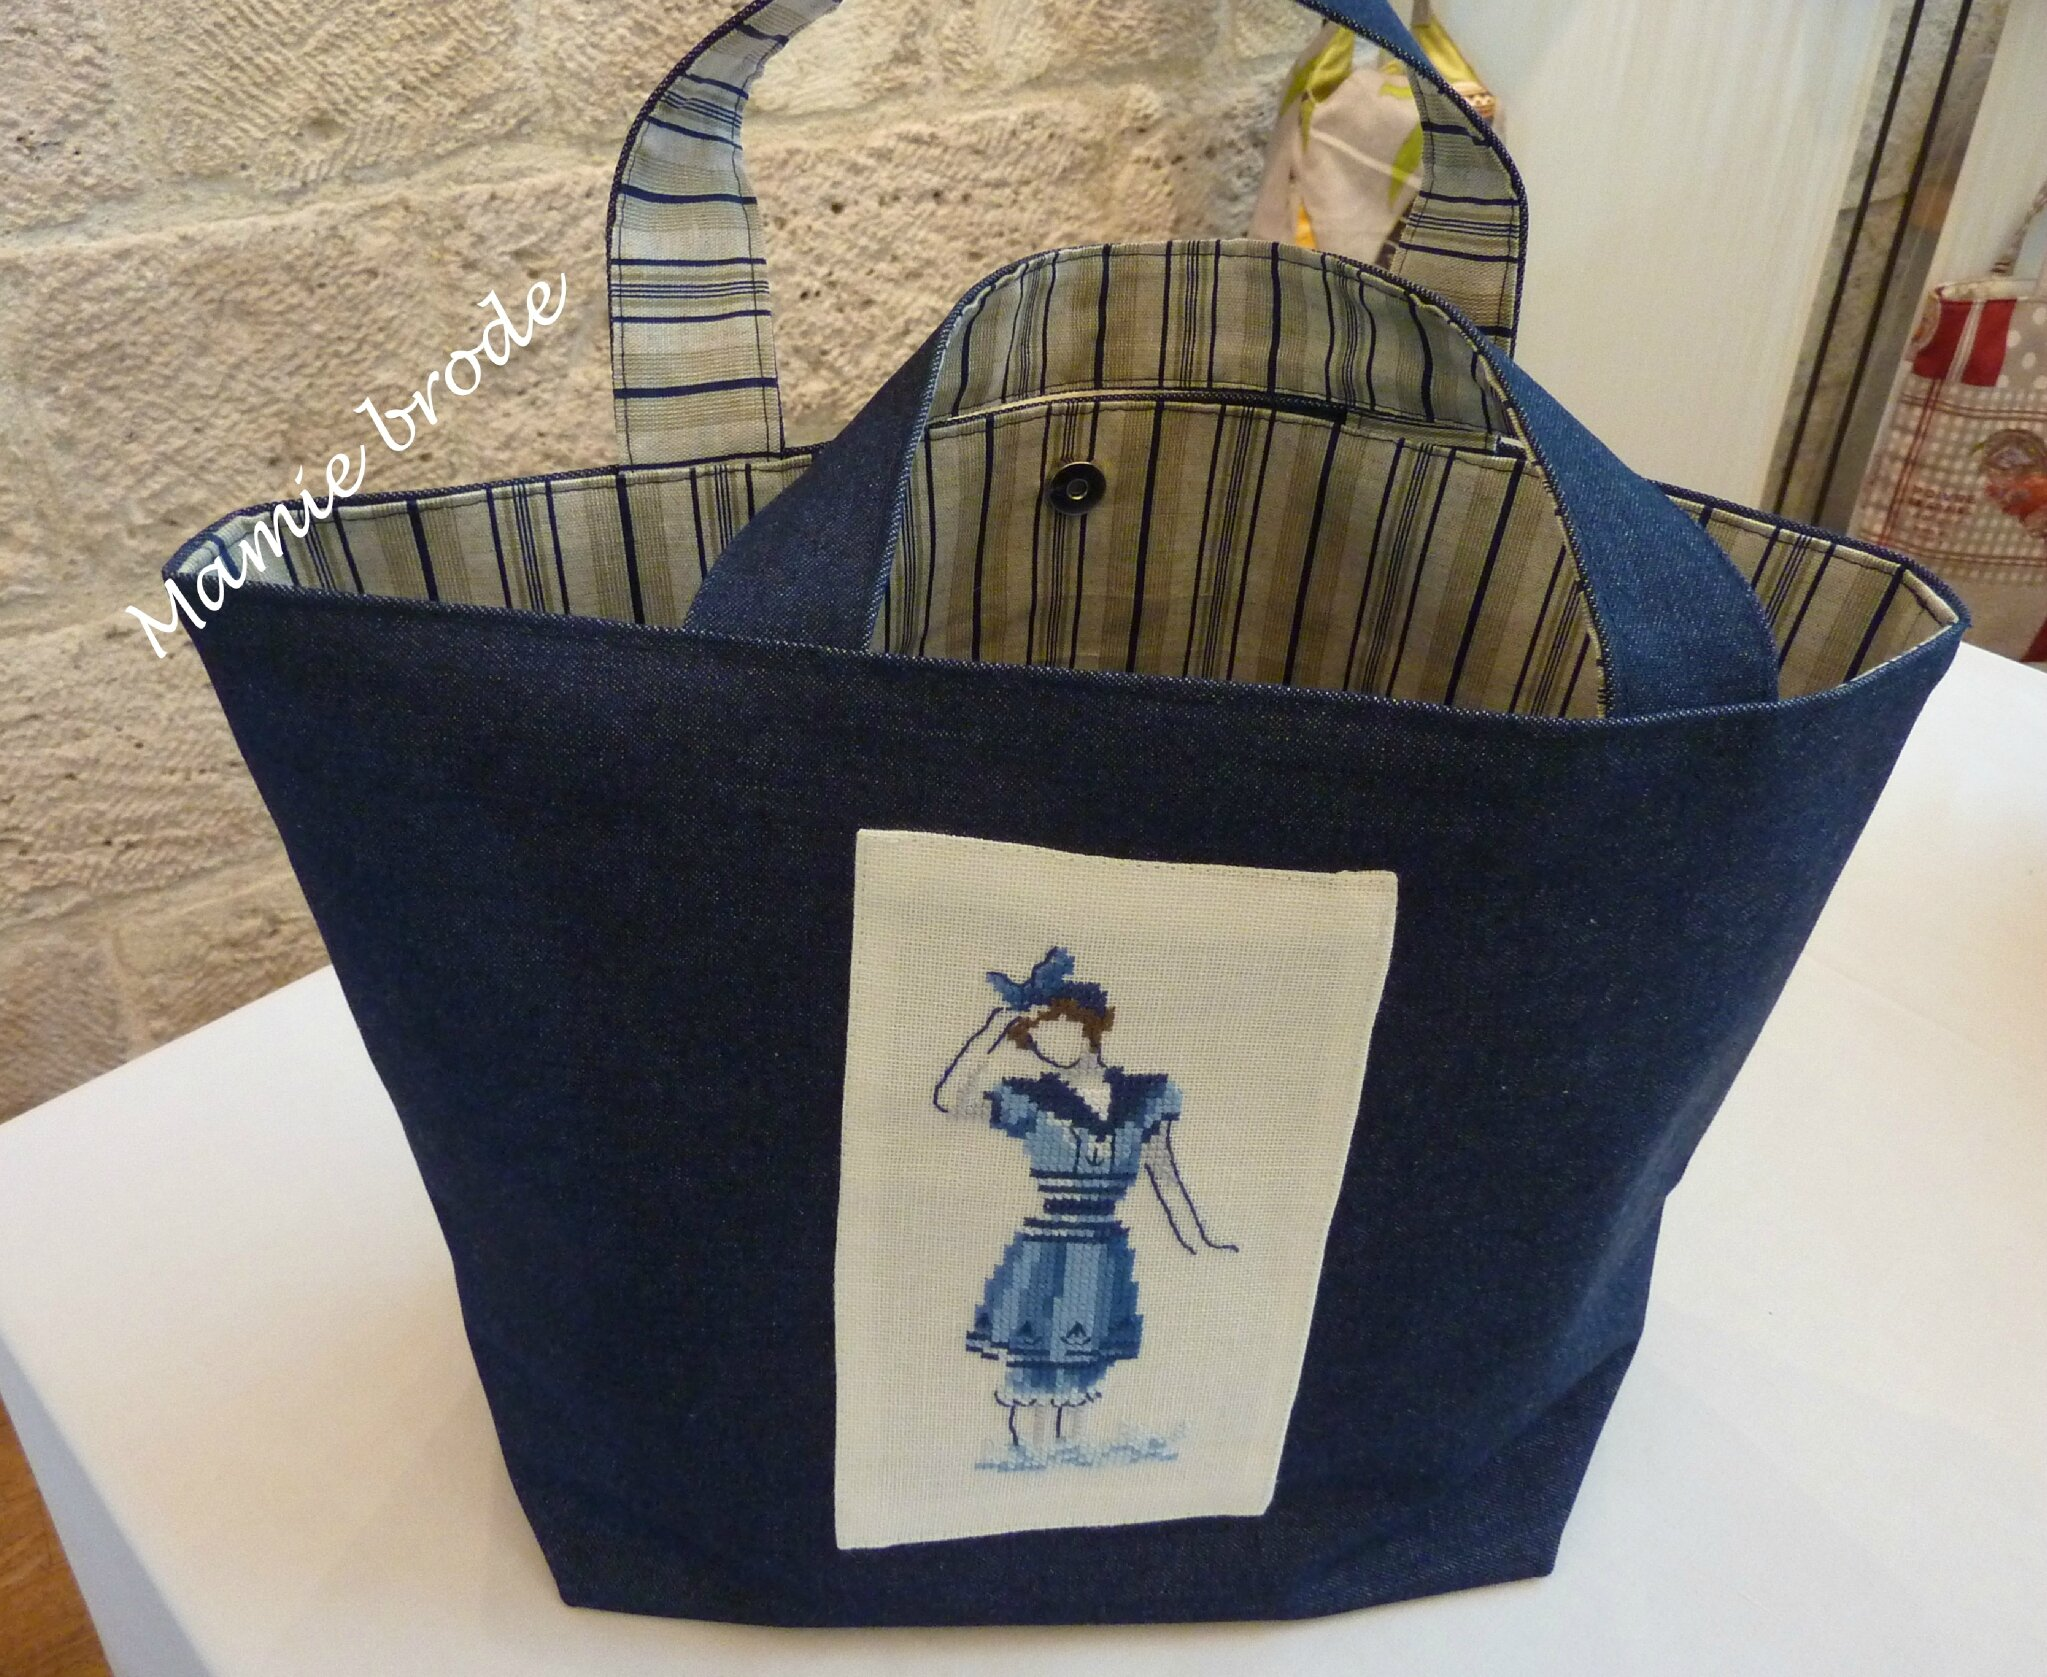 17) Sac - Broderie Véronique Enginger